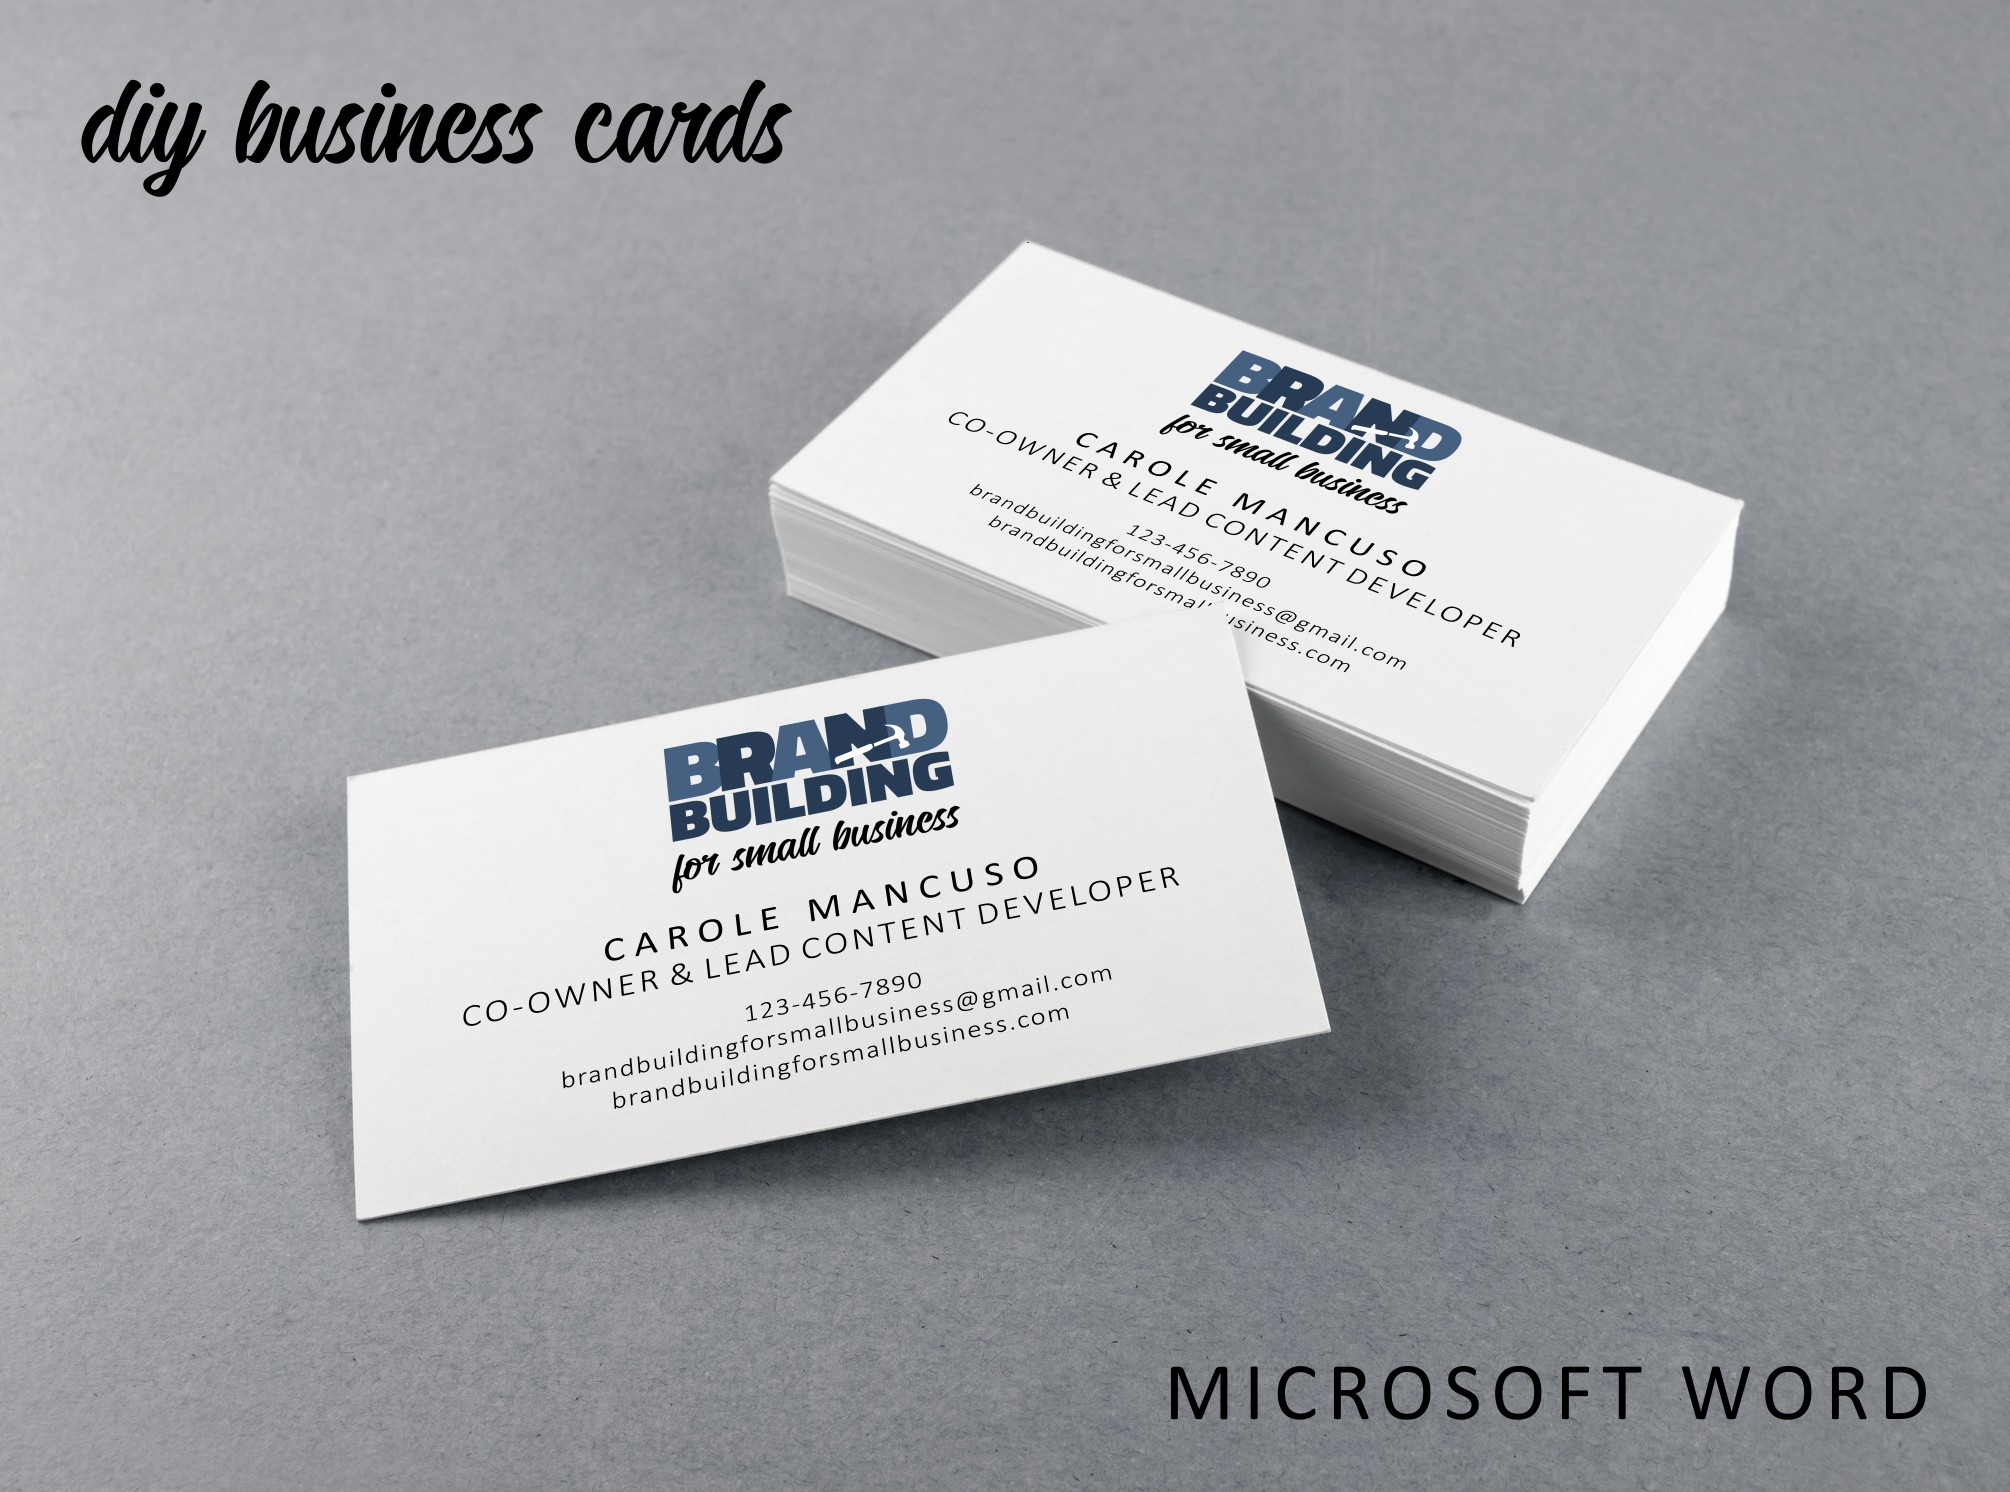 How To Set Up Simple Print And Cut Business Cards In Microsoft Word Brand Building For Small Business